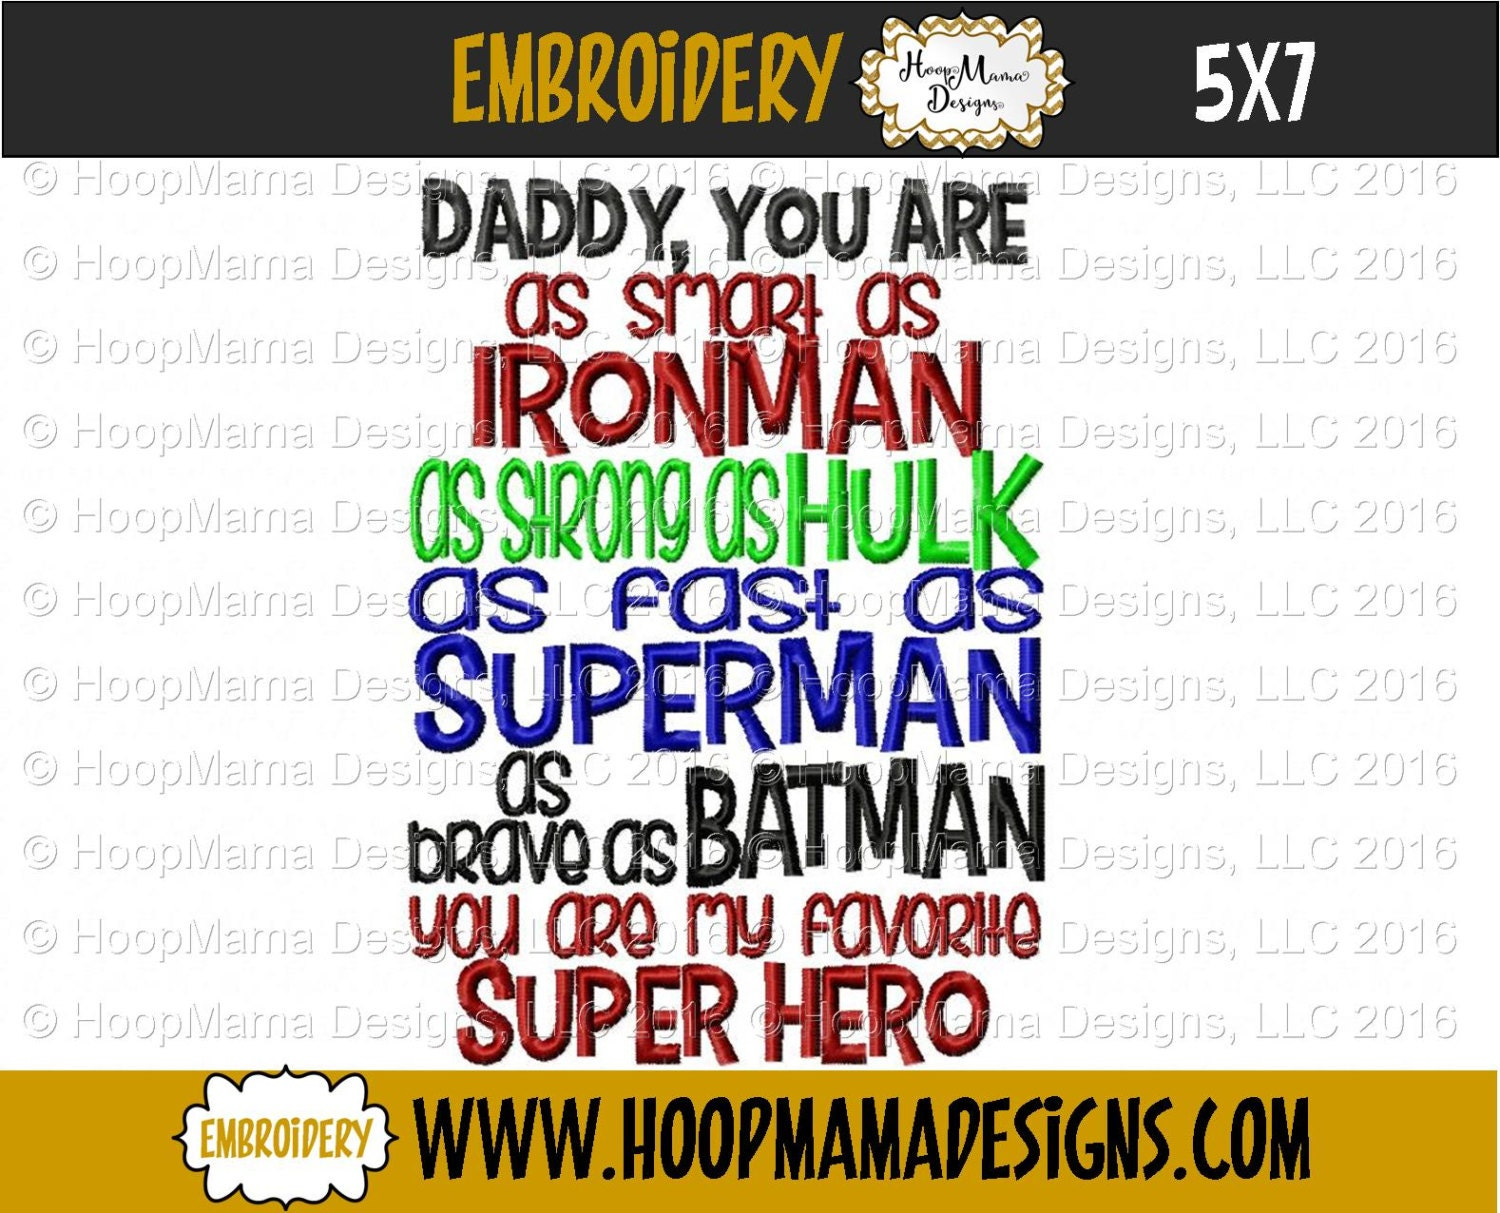 Embroidery designs for toilet paper - Daddy You Are Smart Ironman Hulk Superman Batman 5x7 6x10 Favorite Super Hero Fathers Day Machine Embroidery Design